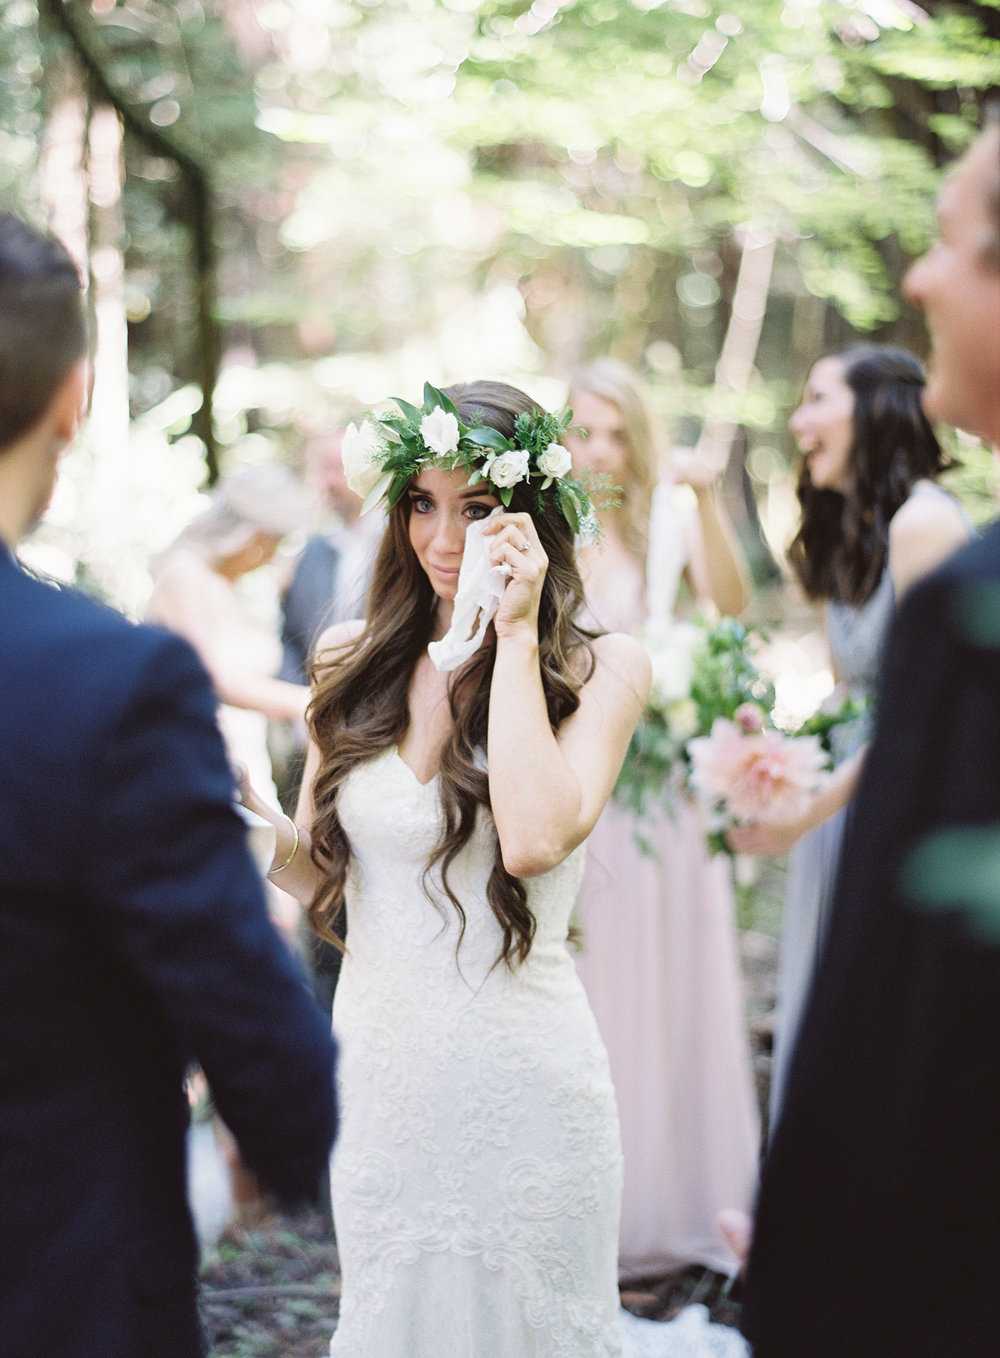 Meghan Mehan Photography | California Wedding Photographer | Napa California Wedding Photographer 078.jpg